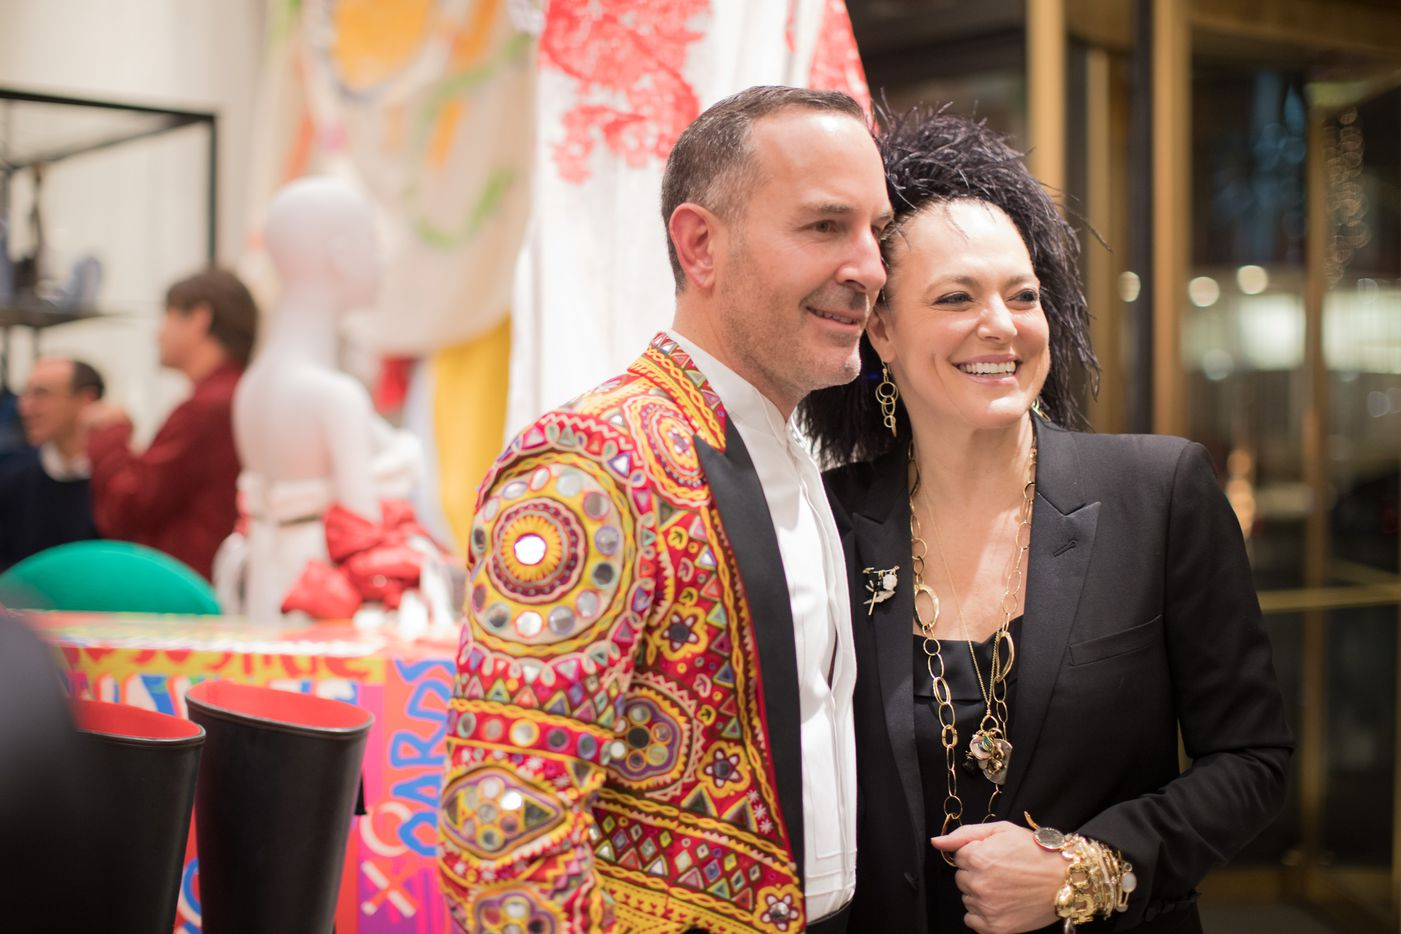 Dressed as the ringmaster, Forty Five Ten co-founder Brian Bolke welcomed designer Ippolita Rostagno to Friday night's opening gala.